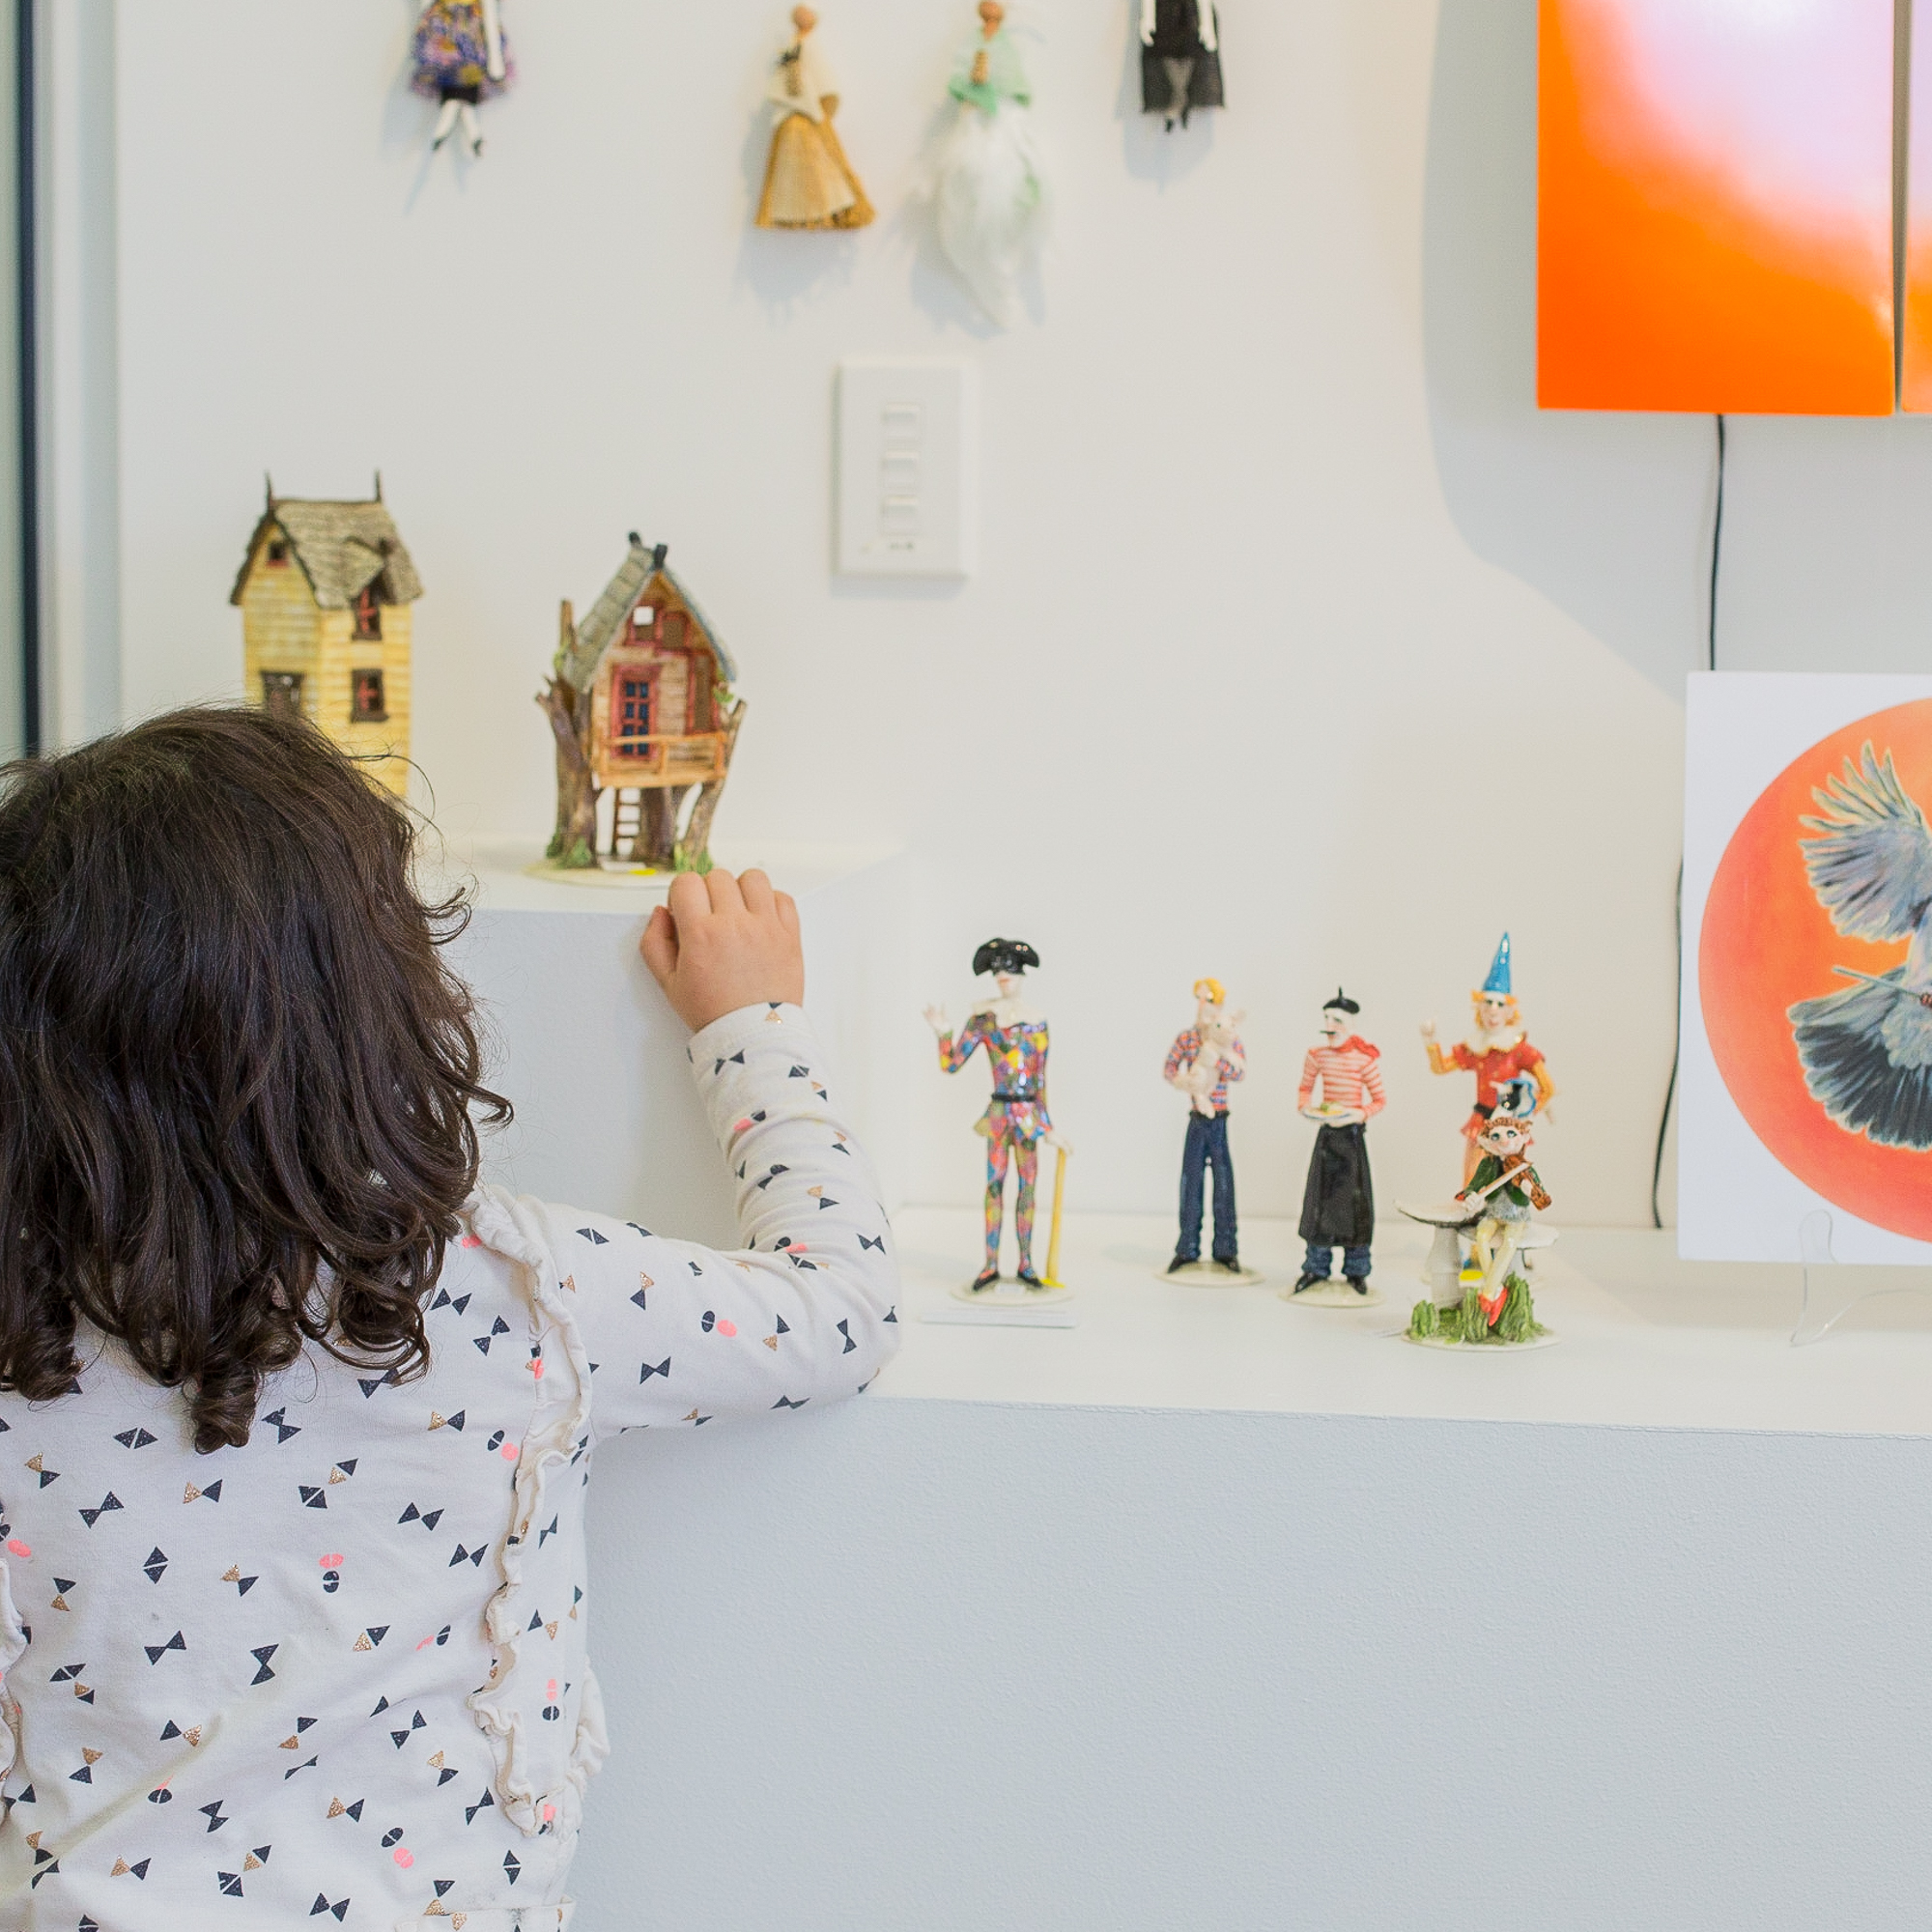 Girl viewing miniatures in gallery